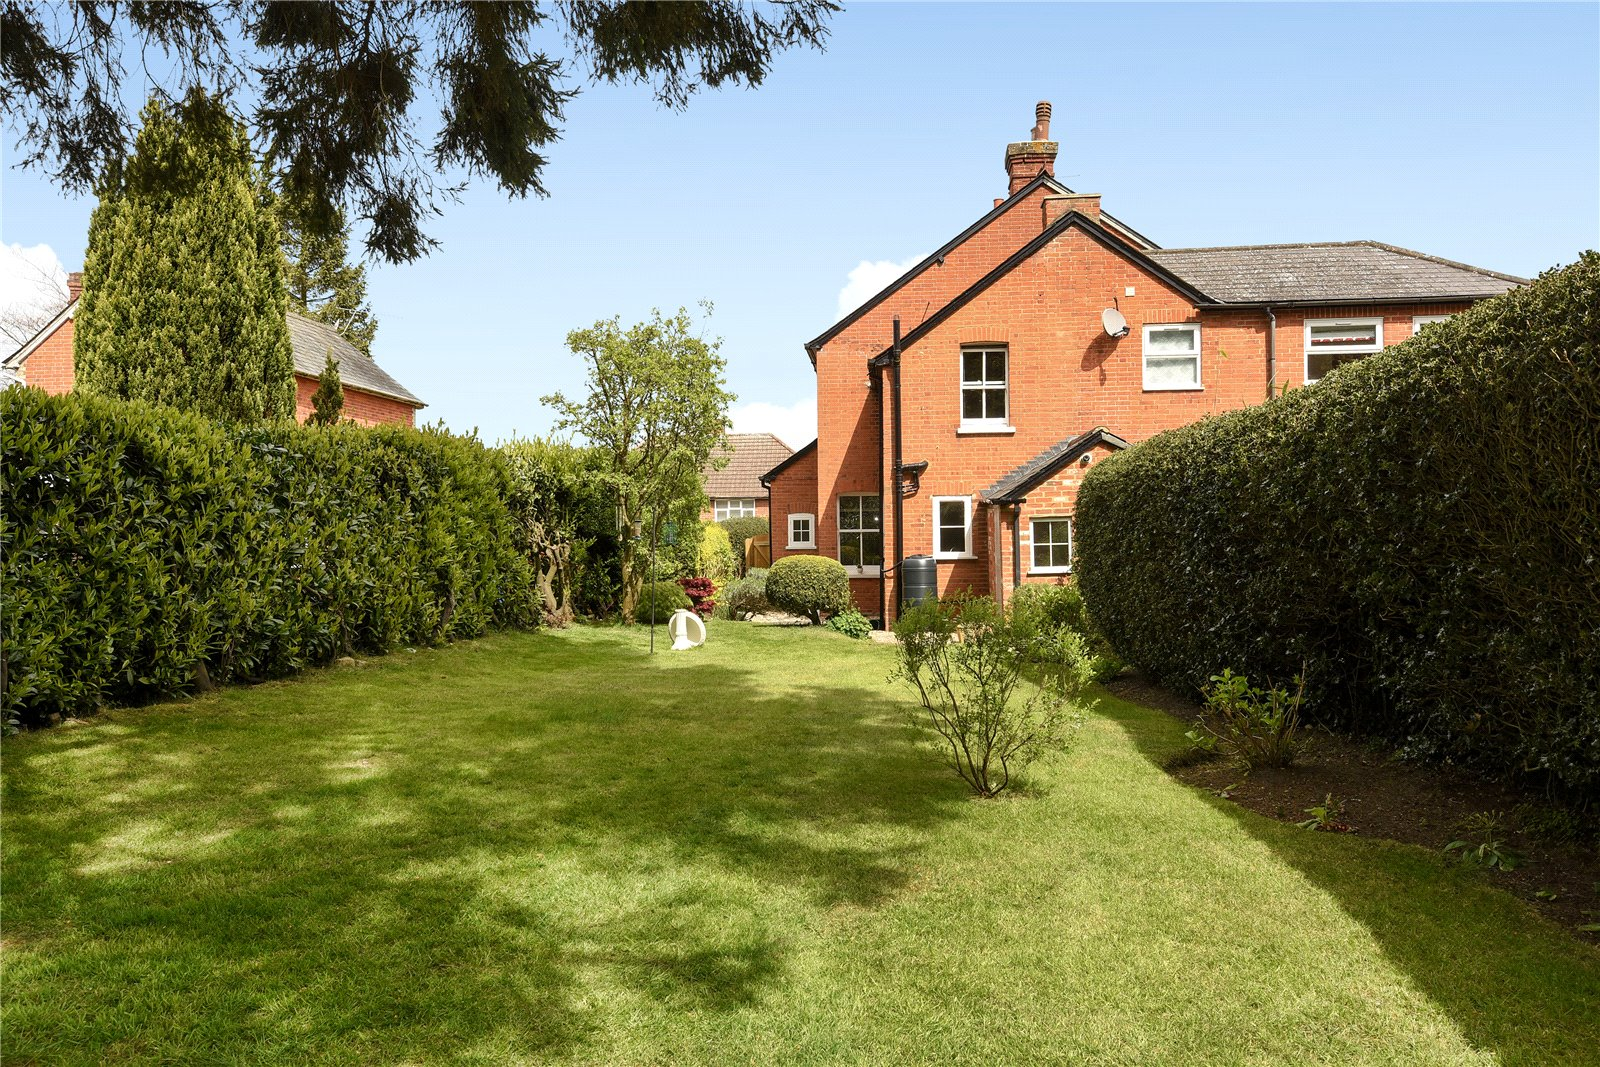 2 Bedrooms Semi Detached House for sale in Church Road, Chavey Down, Ascot, Berkshire, SL5